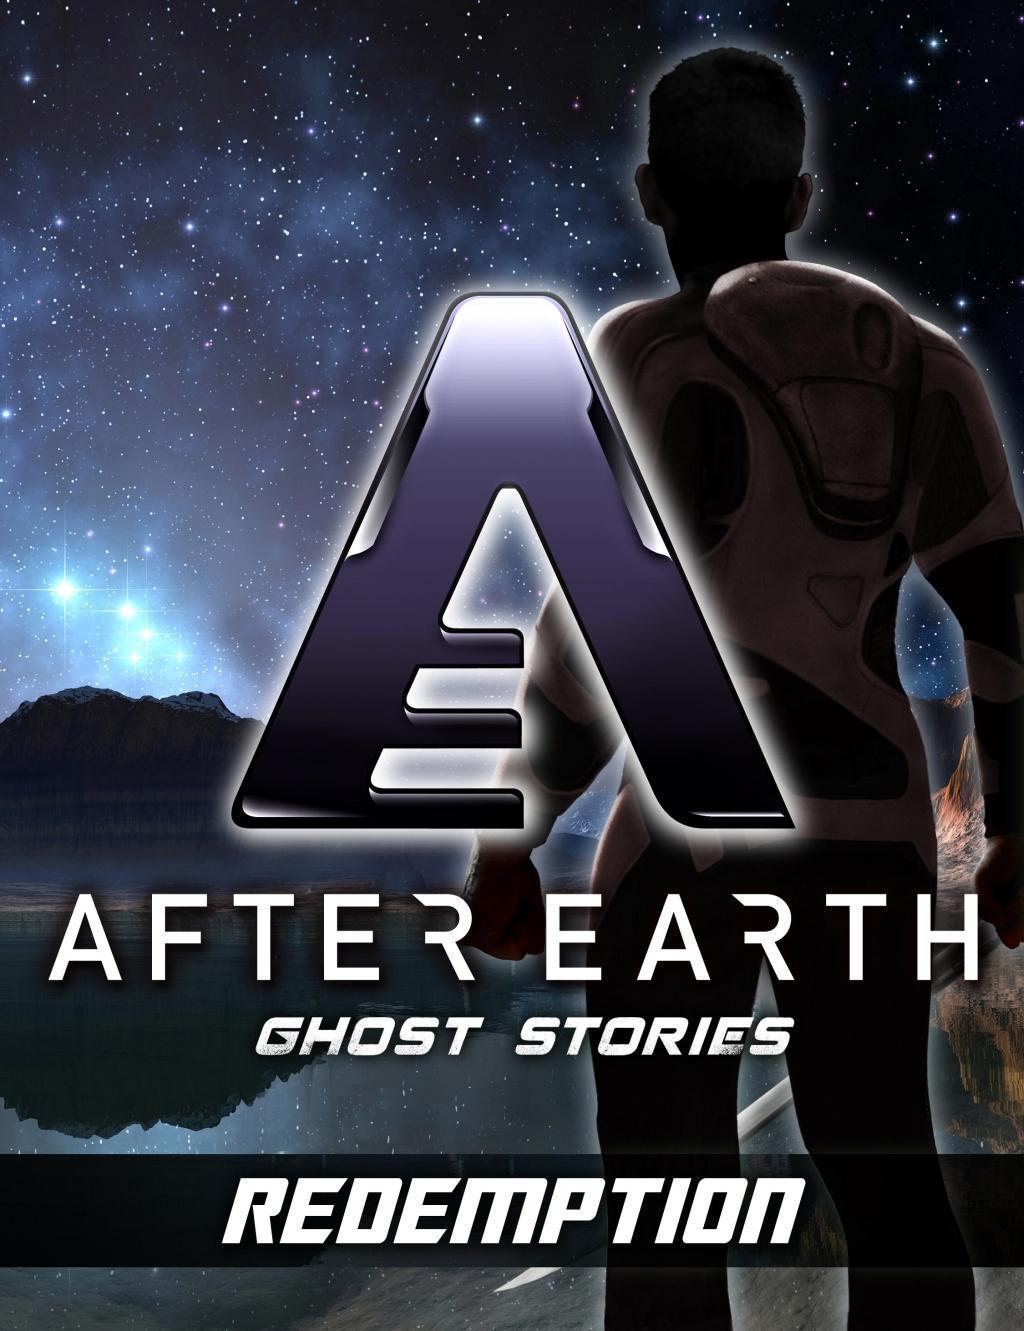 Redemption - After Earth: Ghost Stories (Short Story)